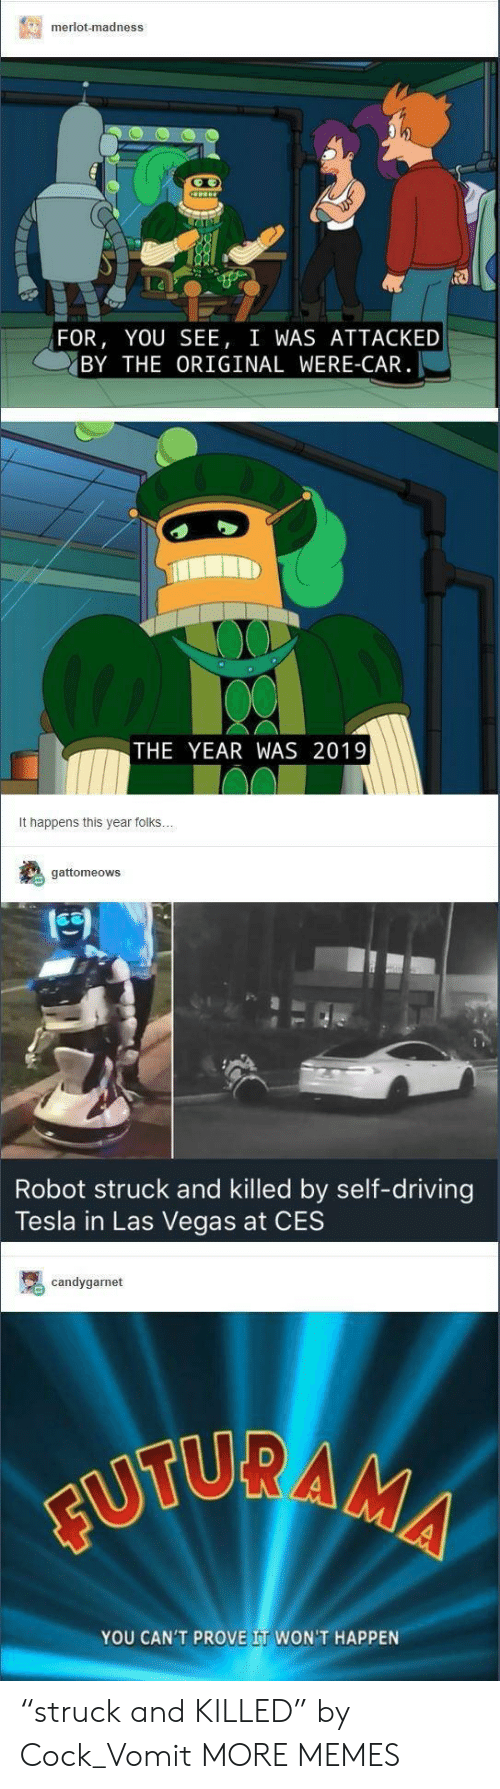 """ces: merlot-madness  FOR, YOU SEE, I WAS ATTACKED  BY THE ORIGINAL WERE-CAR  THE YEAR WAS 2019  It happens this year folks  gattomeows  Robot struck and killed by self-driving  Tesla in Las Vegas at CES  candygarnet  YOU CAN'T PROVE IT WON'T HAPPEN """"struck and KILLED"""" by Cock_Vomit MORE MEMES"""